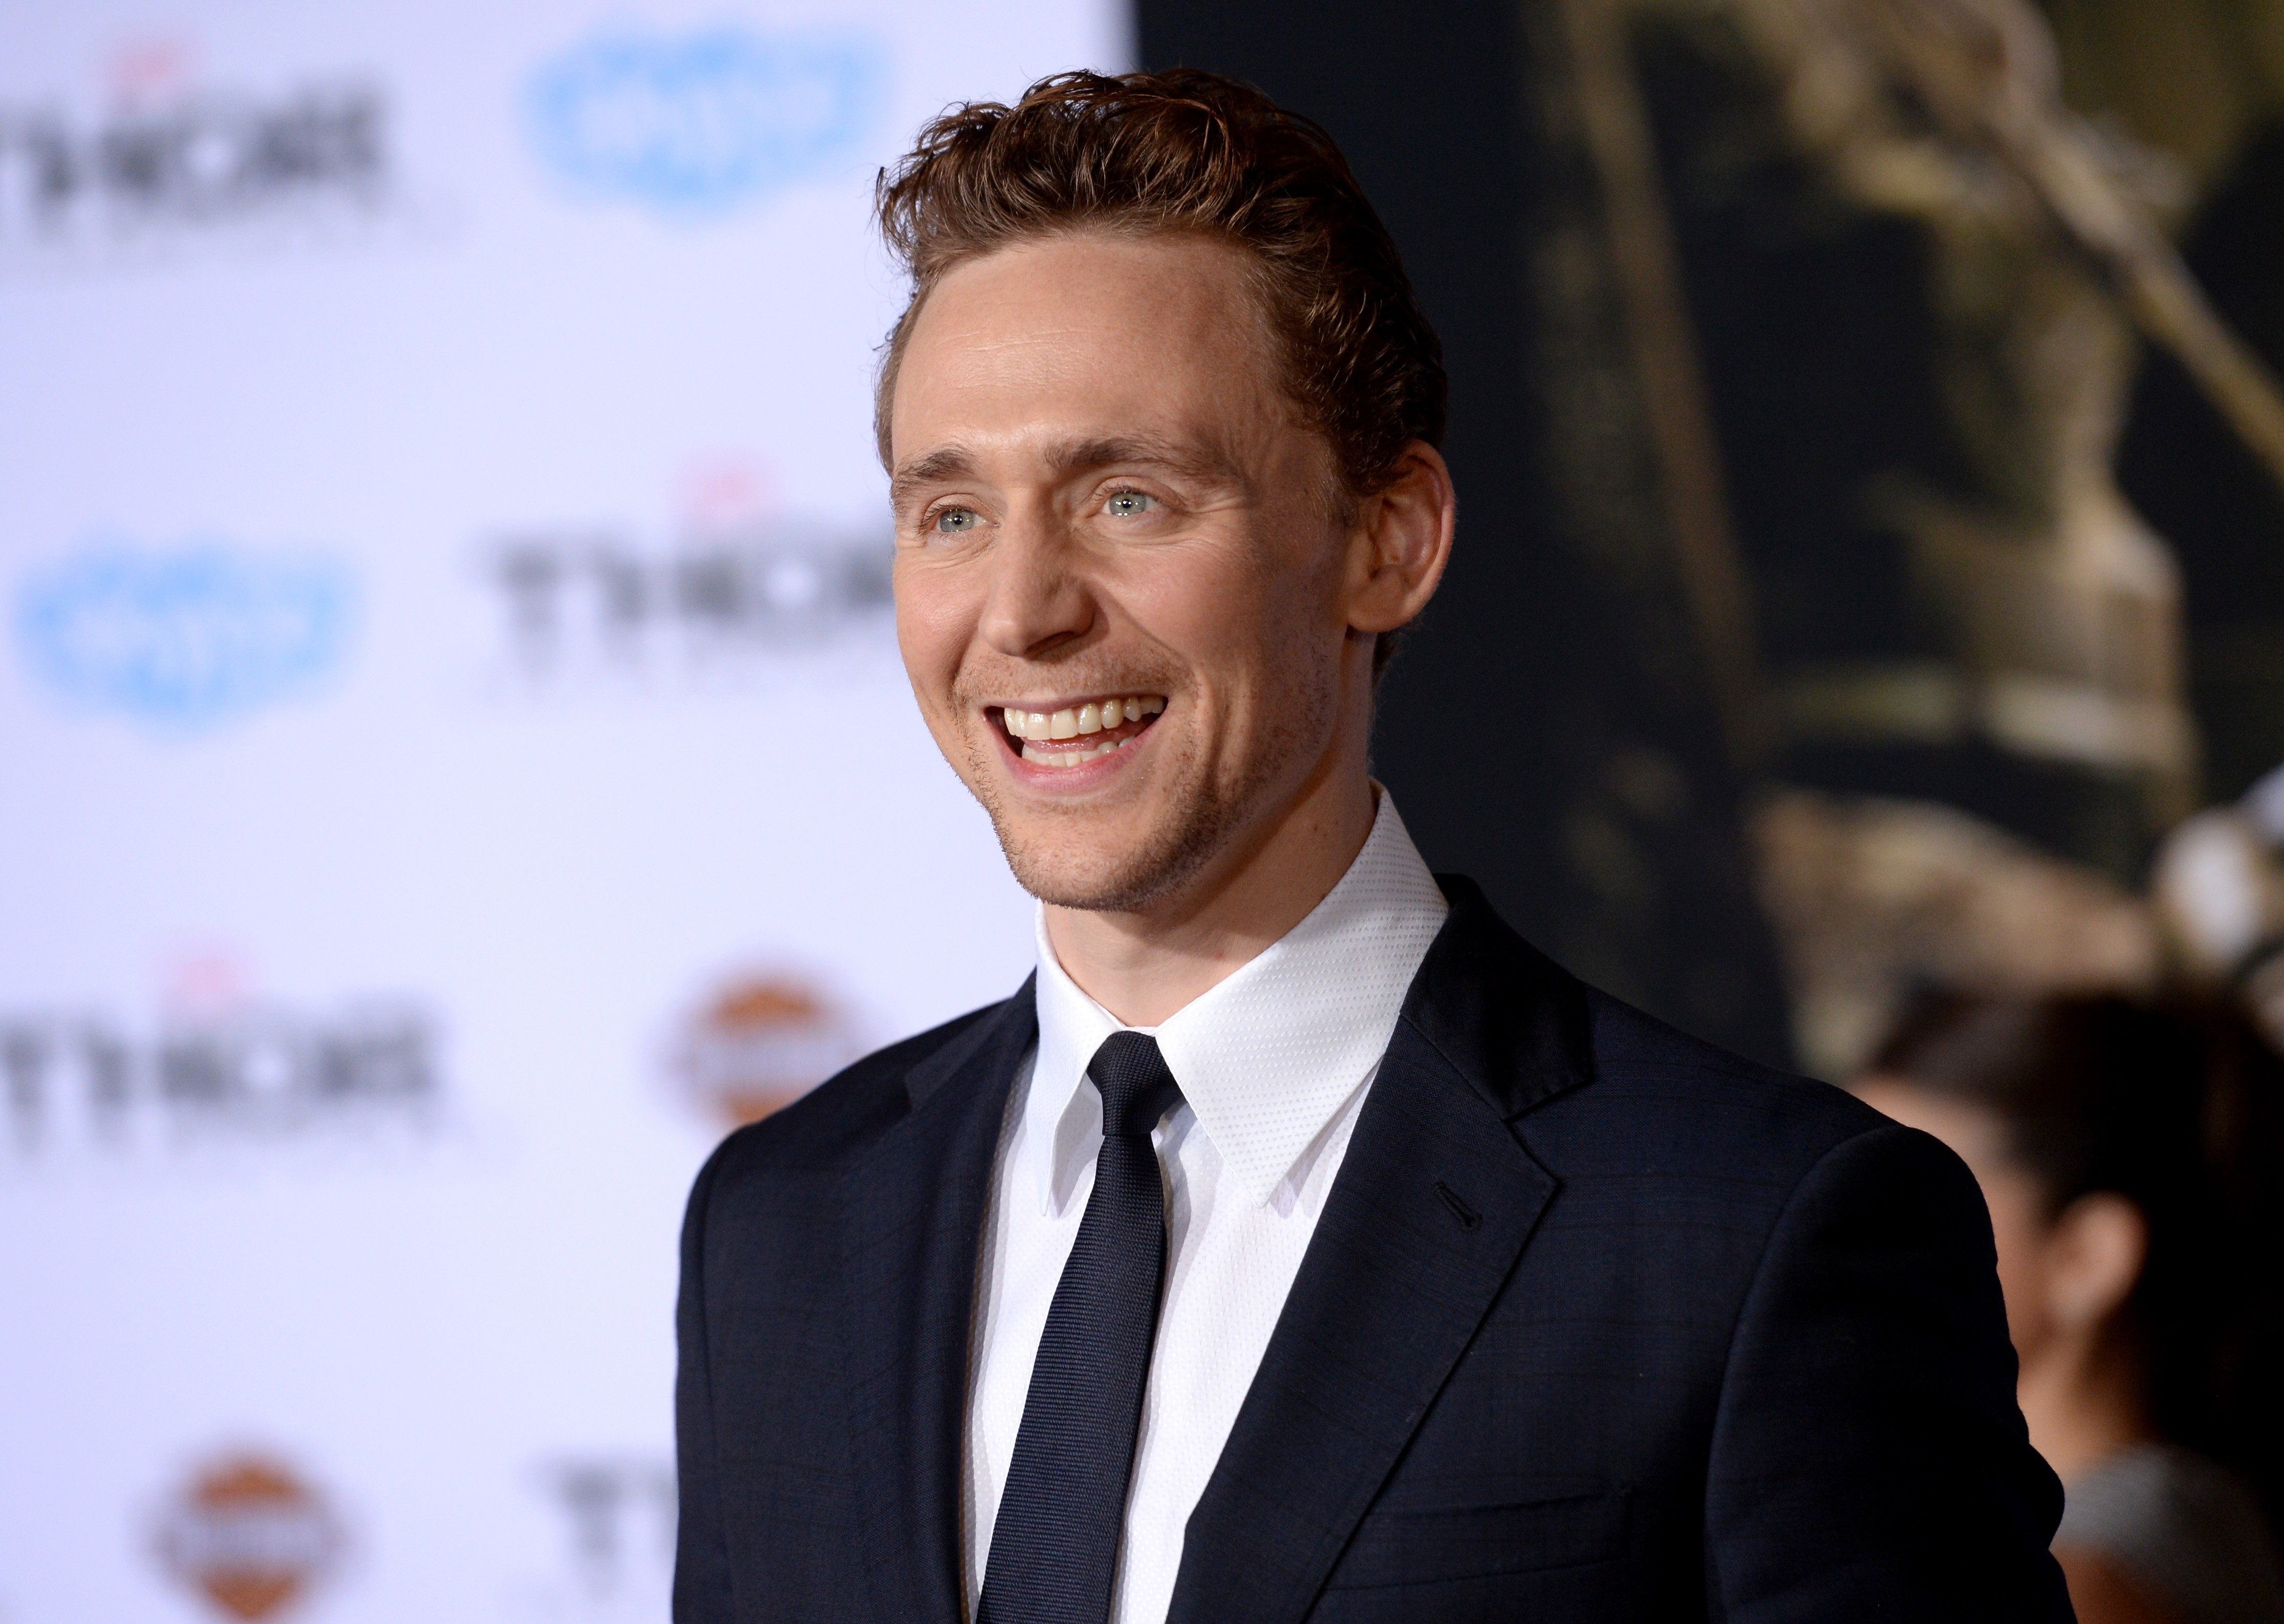 Tom Hiddleston é o candidato preferido de Gaiman para o papel de Sonho (Foto: Getty Images)